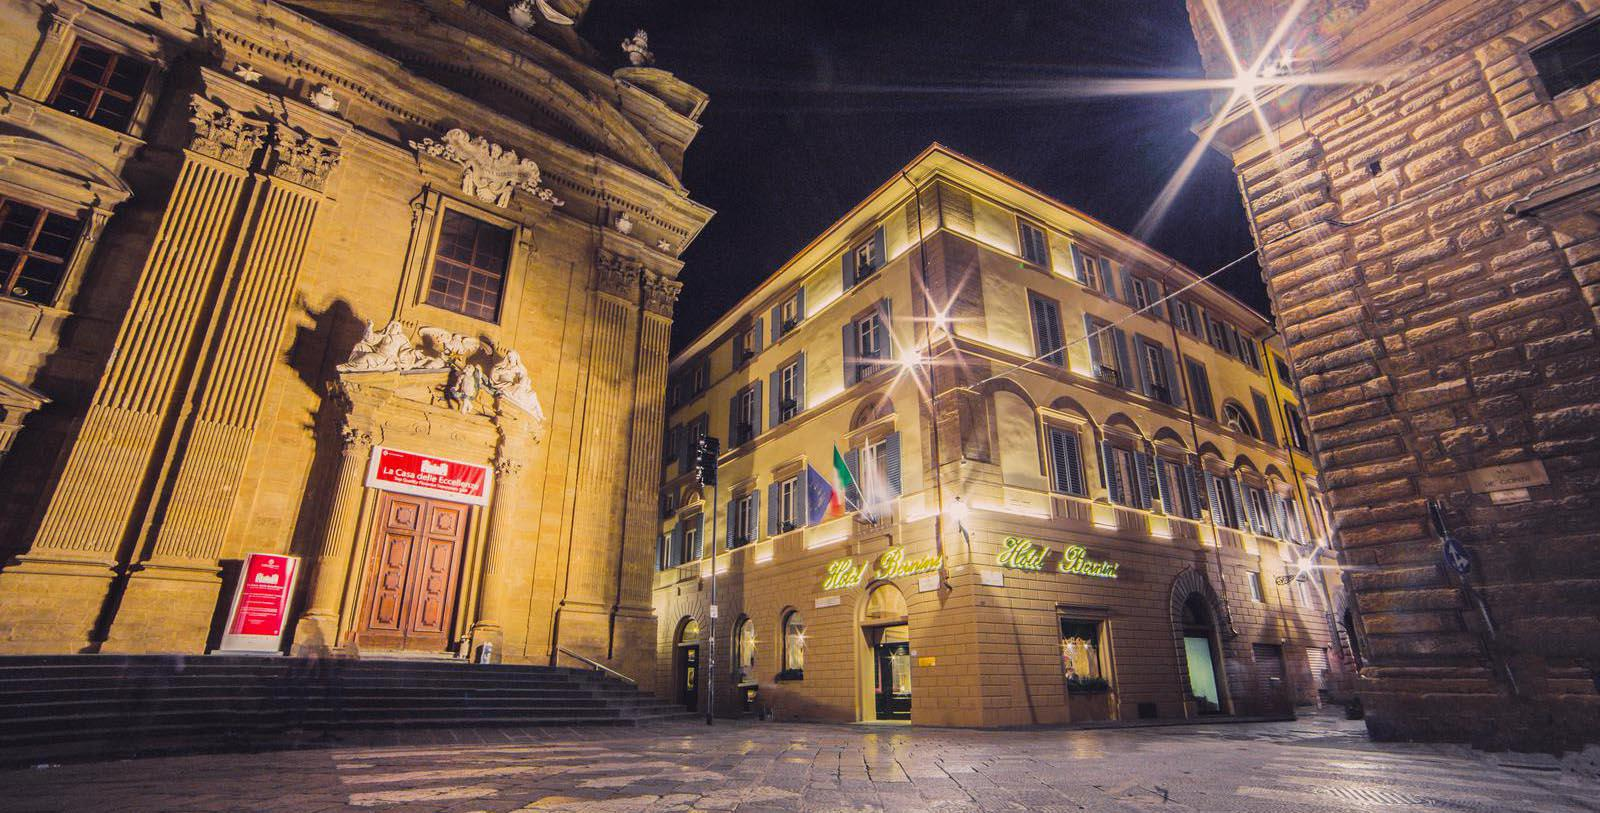 Image of hotel exterior Bernini Palace Hotel, 1500, Member of Historic Hotels Worldwide, in Florence, Italy, Special Offers, Discounted Rates, Families, Romantic Escape, Honeymoons, Anniversaries, Reunions